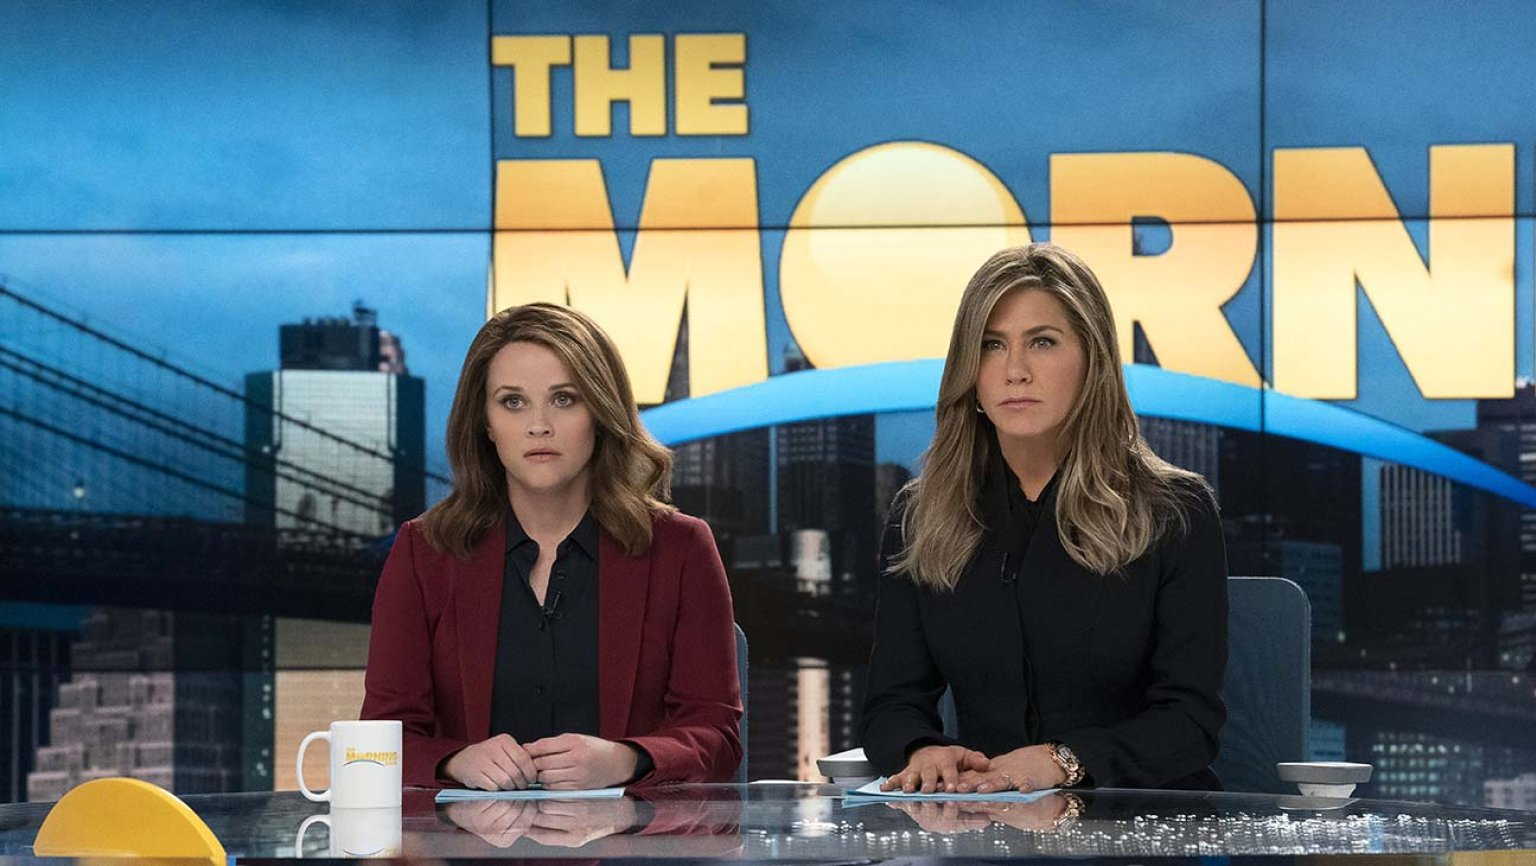 Jennifer Aniston and Reese Witherspoon star in The Morning Show.